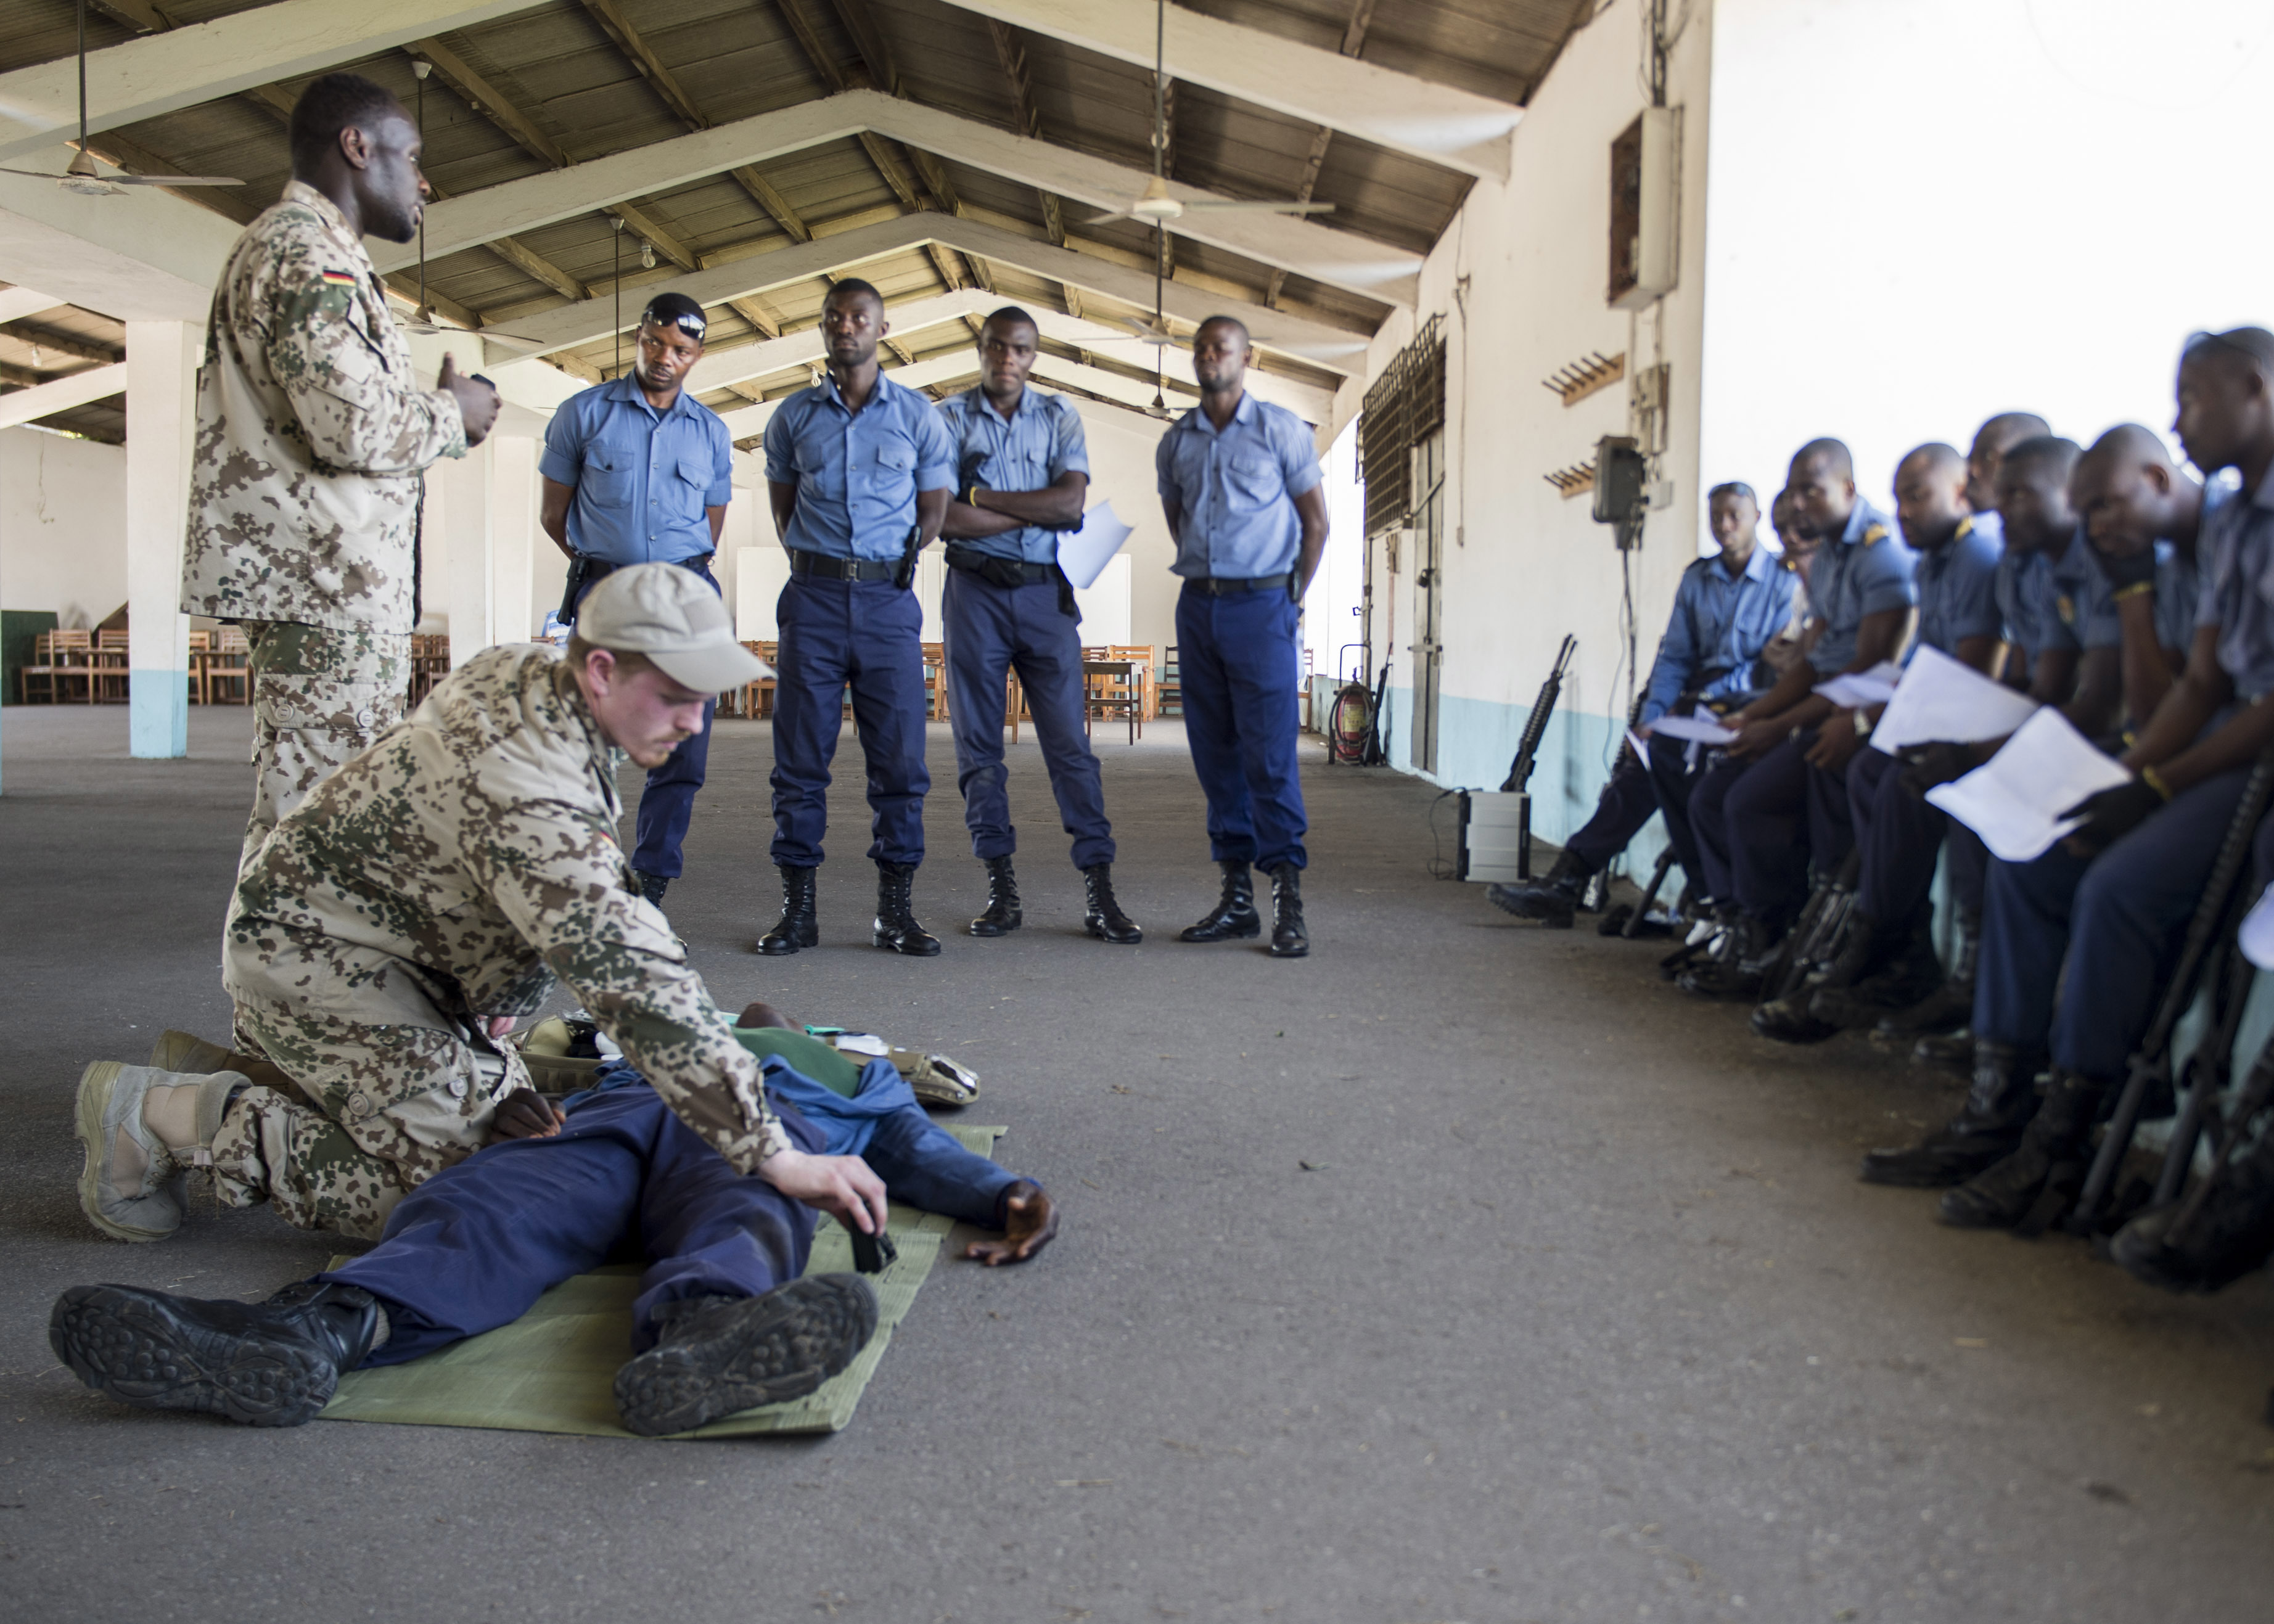 SEKONDI, Ghana (March 15, 2016) - German navy maritime interdiction operations  team members brief Ghanaian Navy Sailors on combat first-aid on the Sekondi Naval Base as part of a work-up to Exercise Obangame/Saharan Express 2016, March 15.  Obangame/Saharan Express, one of three African regional express series exercises facilitated by U.S. Naval Forces Europe-Africa/U.S. 6th Fleet, seeks to increase regional cooperation, maritime domain awareness, information sharing practices and improve interoperability among participating forces in order to enhance maritime security and regional economic stability. (U.S. Navy photo by Mass Communication Specialist 2nd Class Luis R. Chavez Jr/Released)